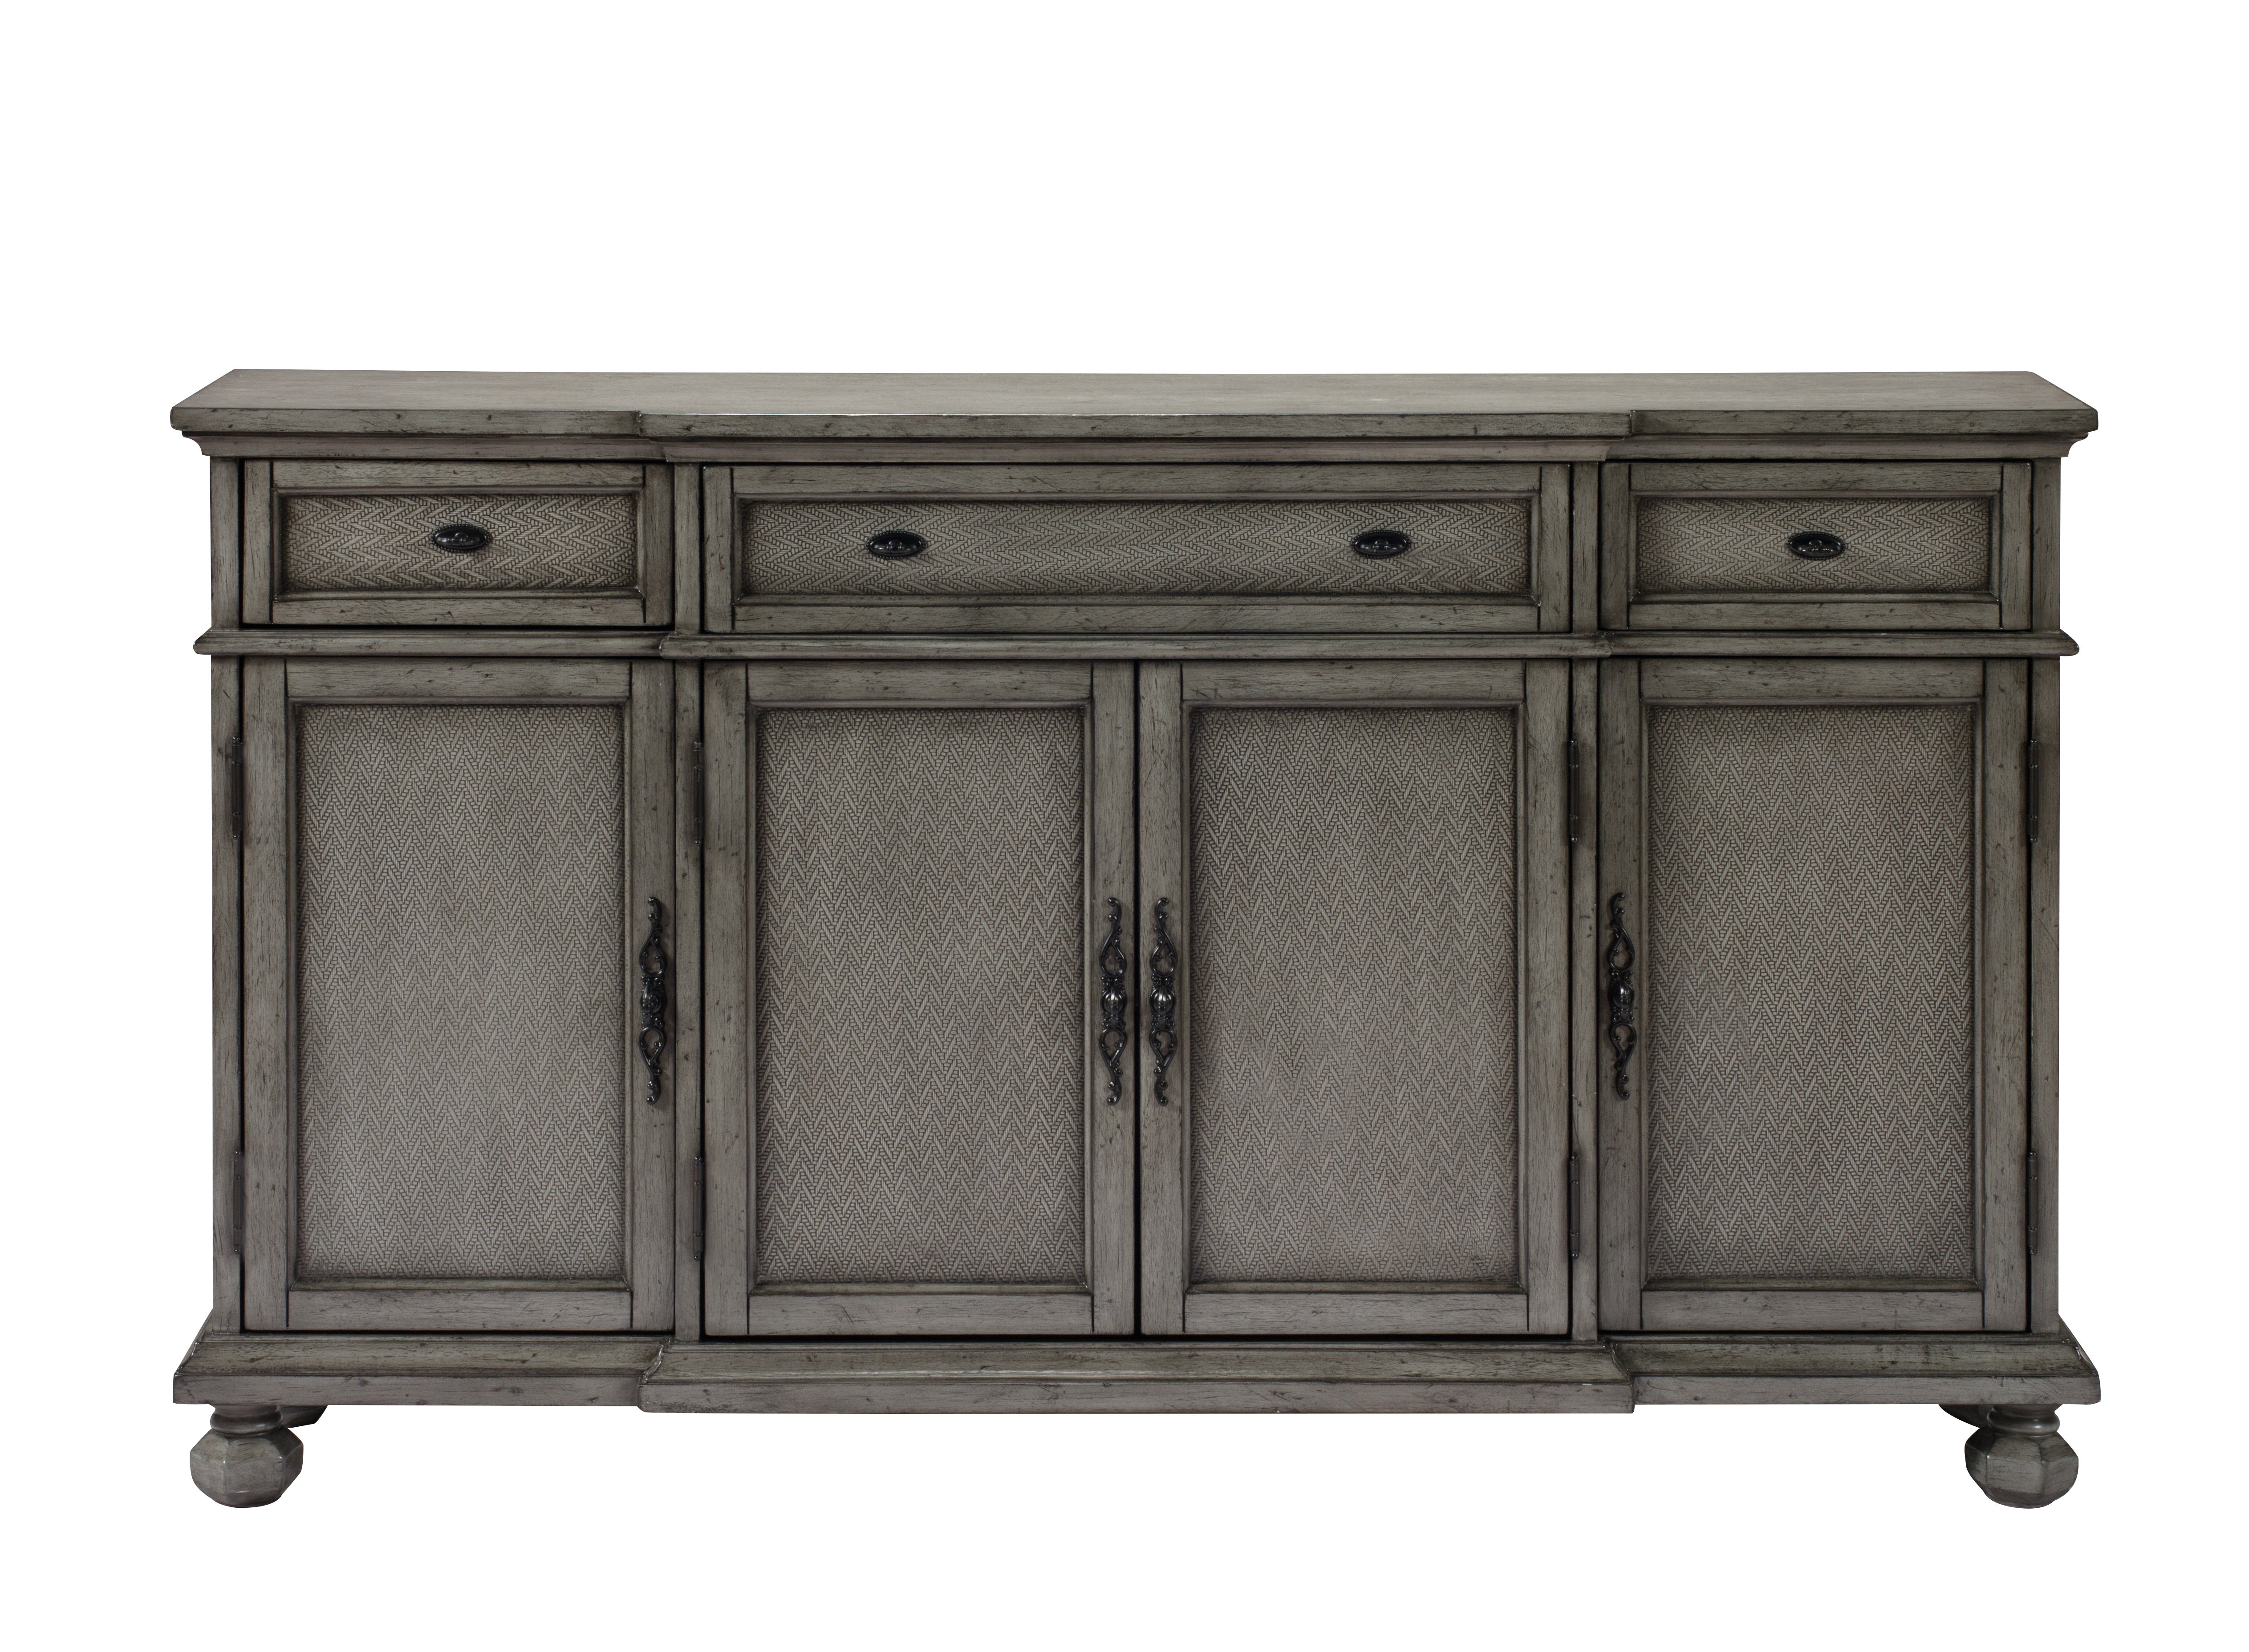 Sideboards & Credenzas | Joss & Main With Lainey Credenzas (View 5 of 20)